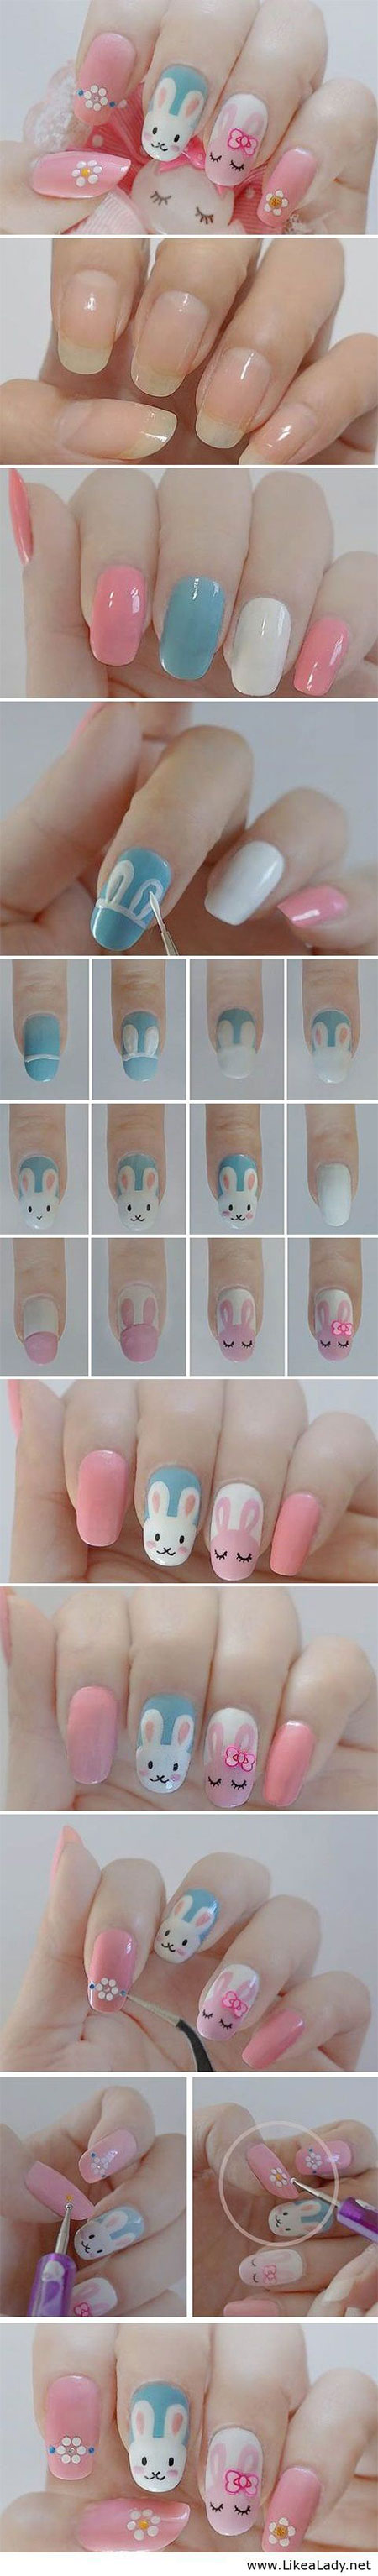 Elegant Easter Nail Art Tutorials For Beginners Learners 2014 10 Elegant Easter Nail Art Tutorials For Beginners & Learners 2014